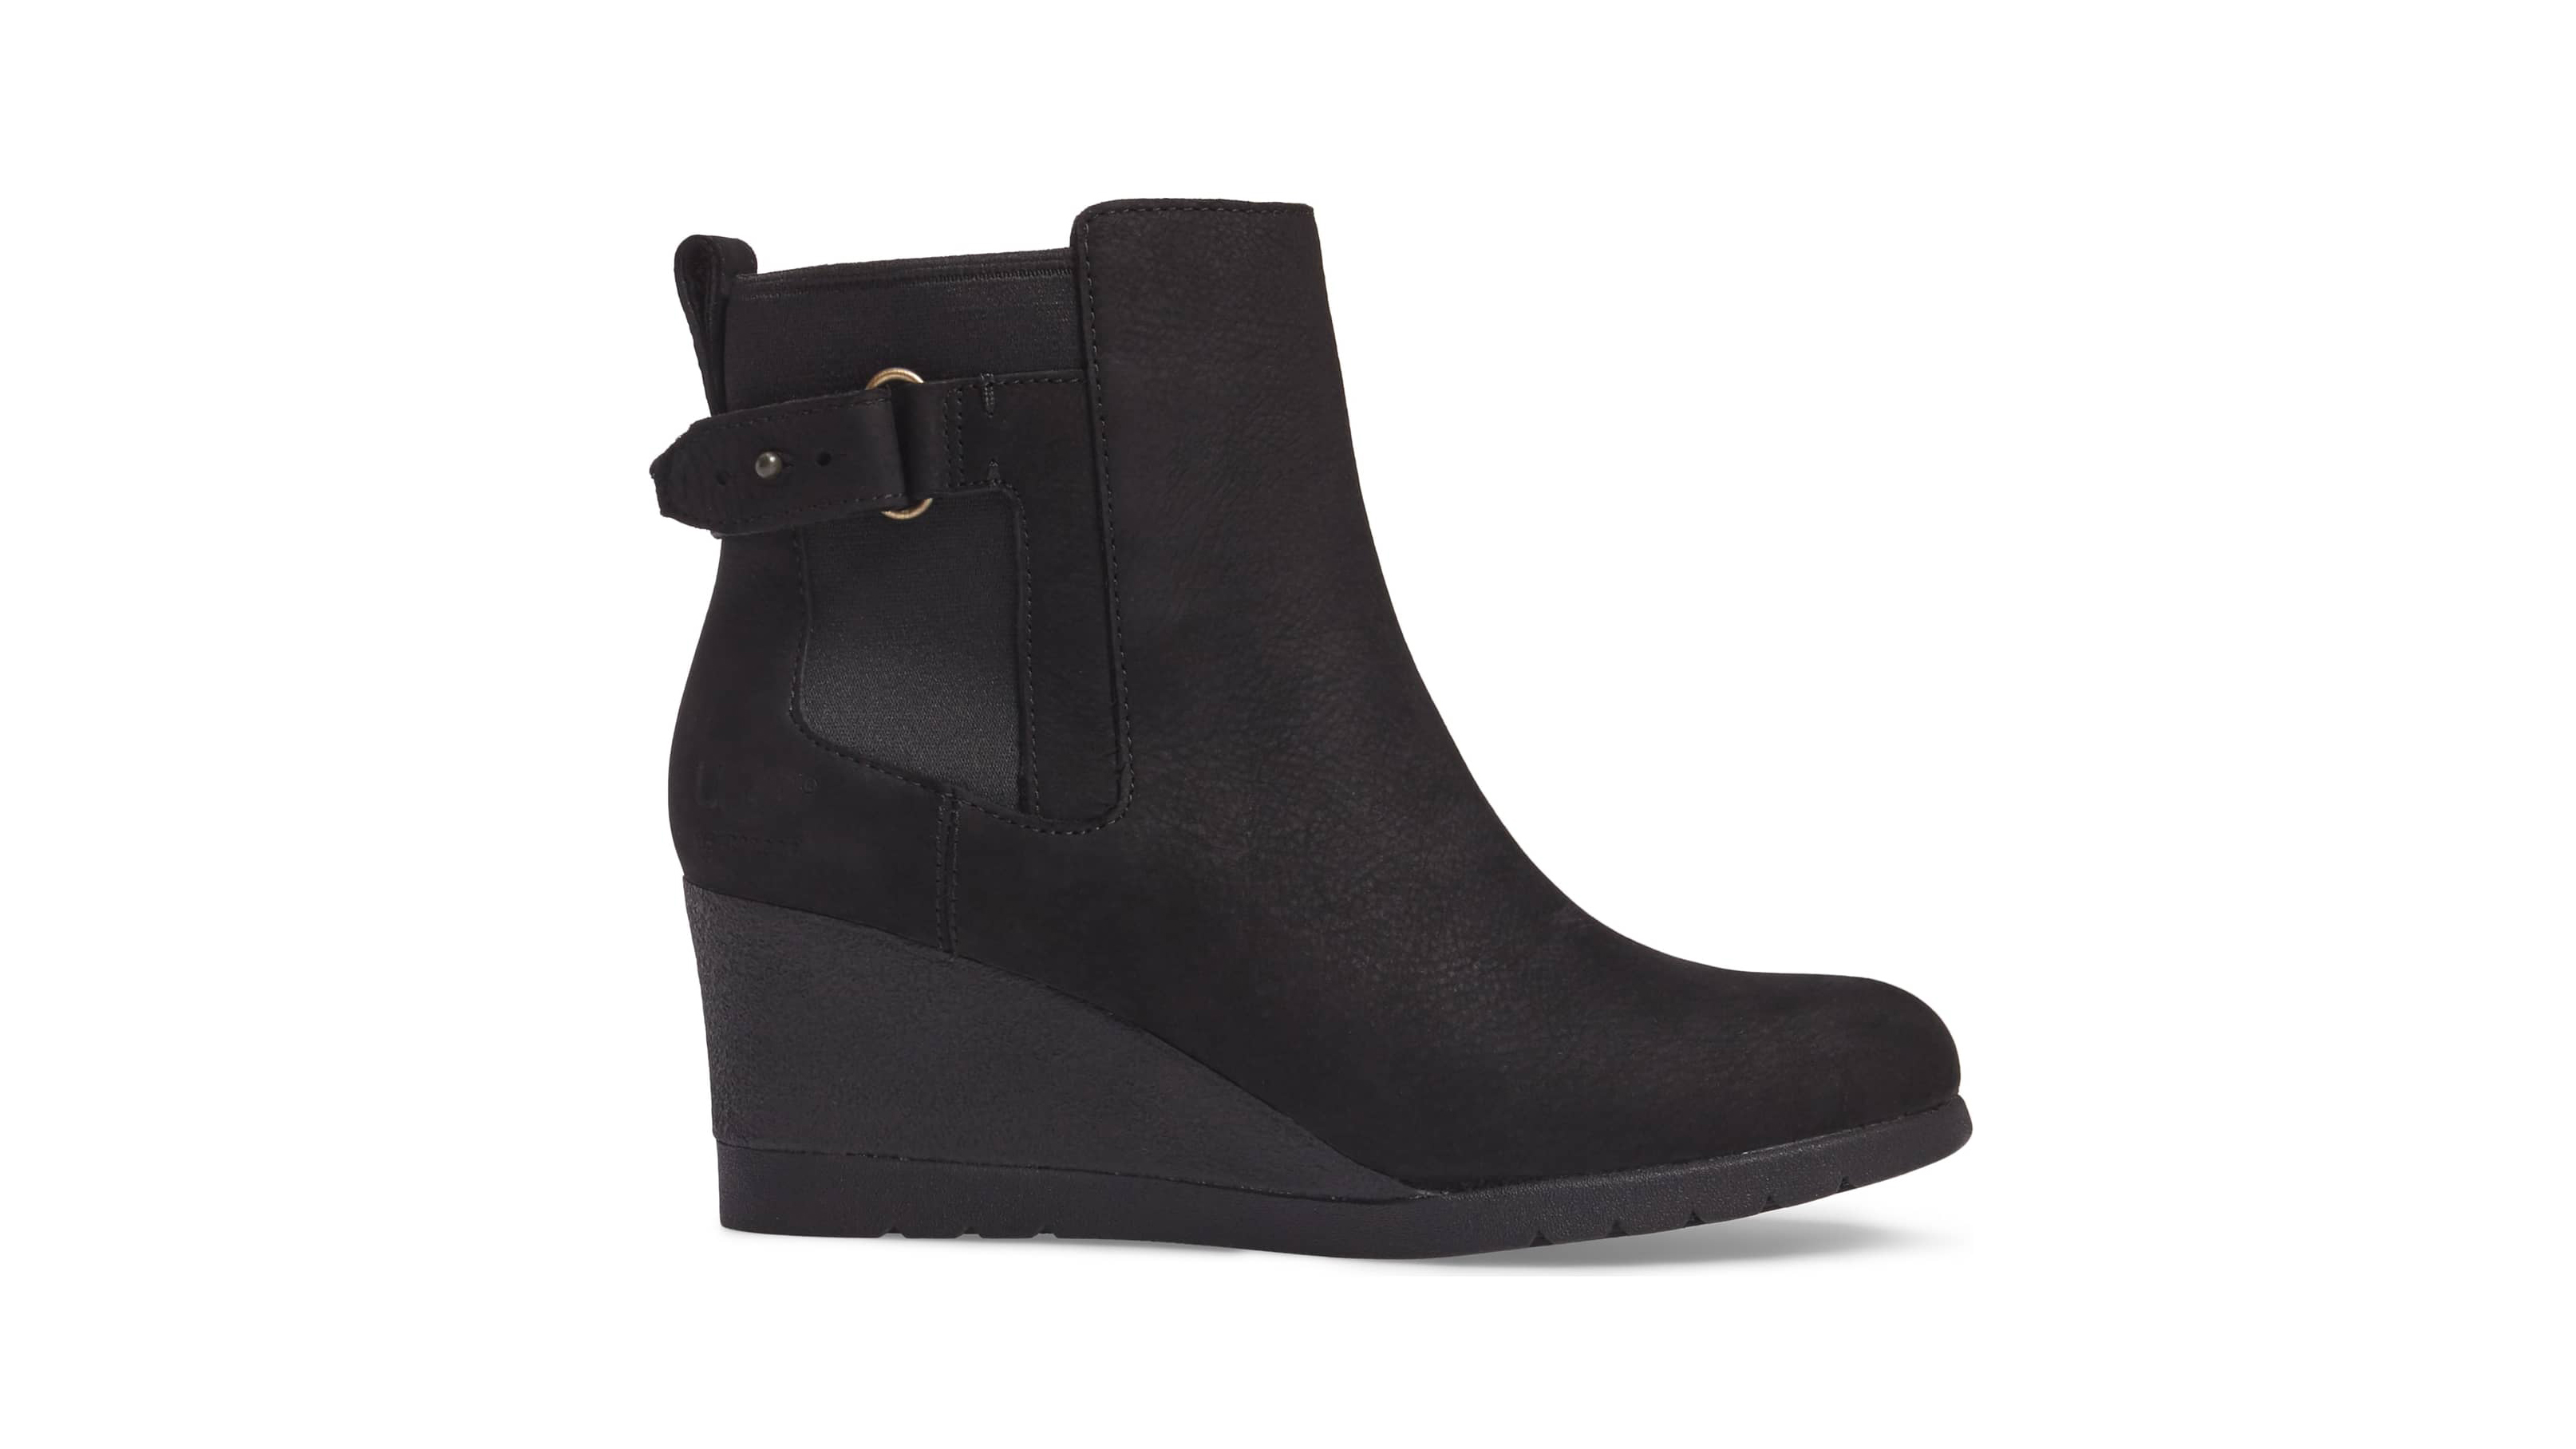 61697a95376 Keep Your Feet Dry With These Waterproof Ugg Wedge Boots